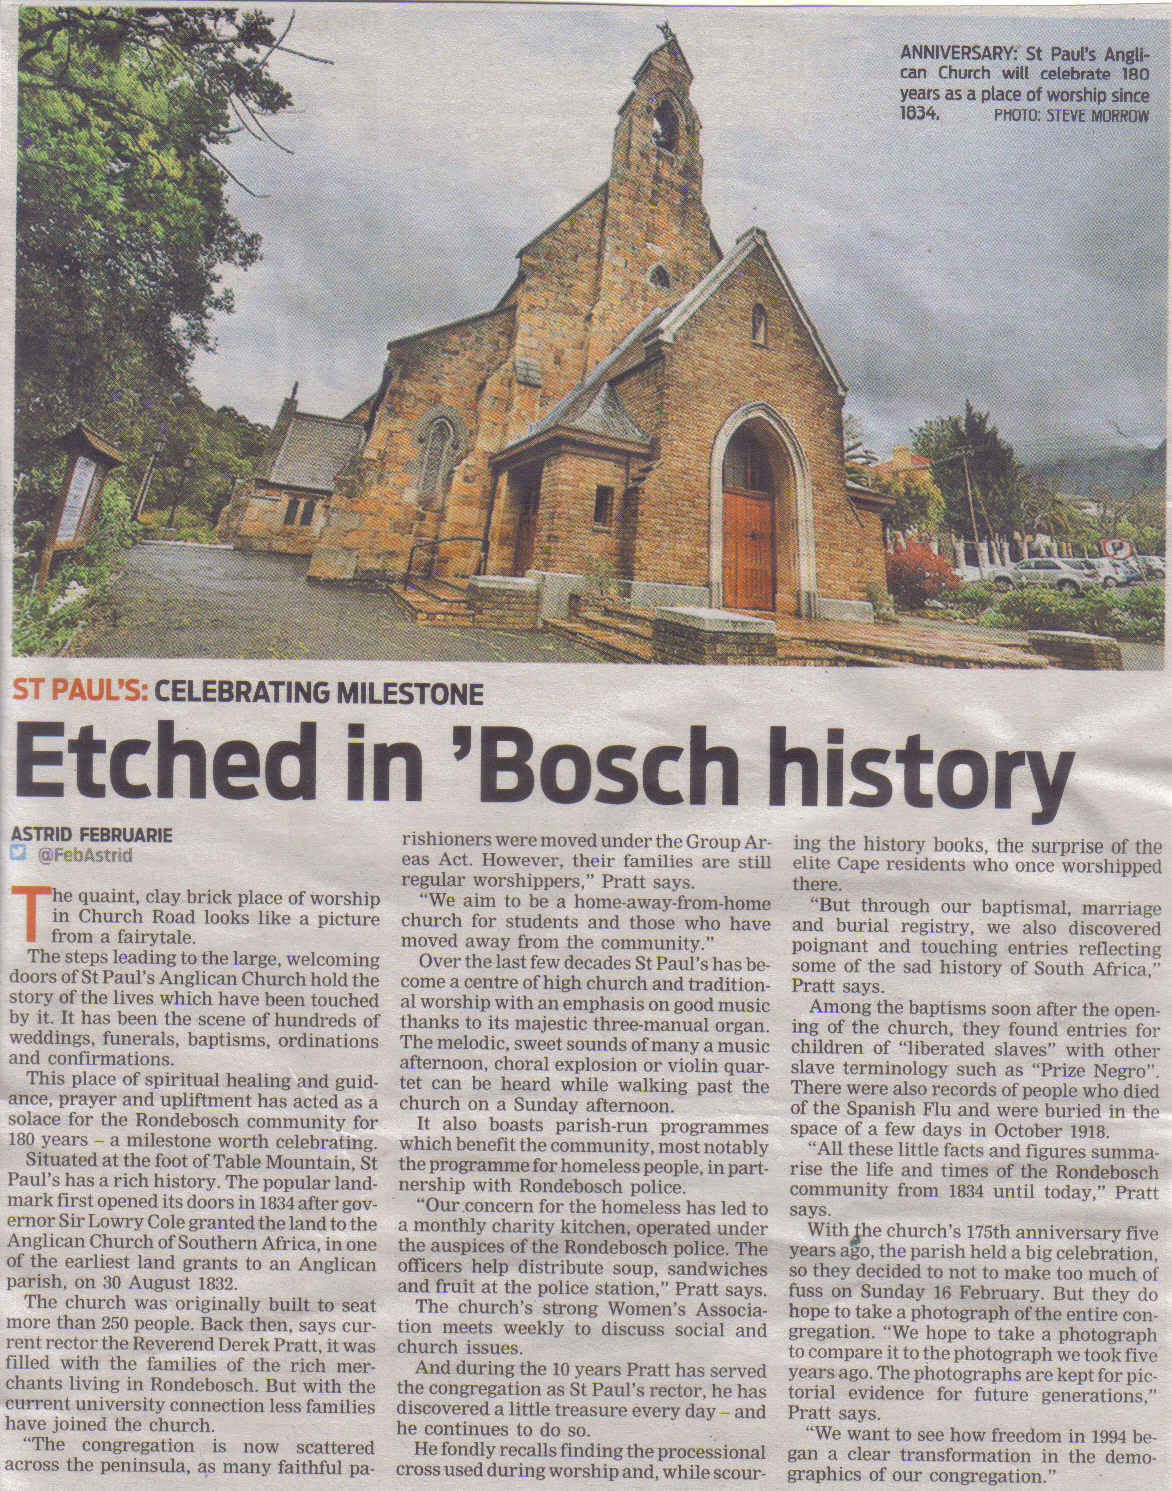 Etched in 'Bosch history (People's Post, 6 February 2014)